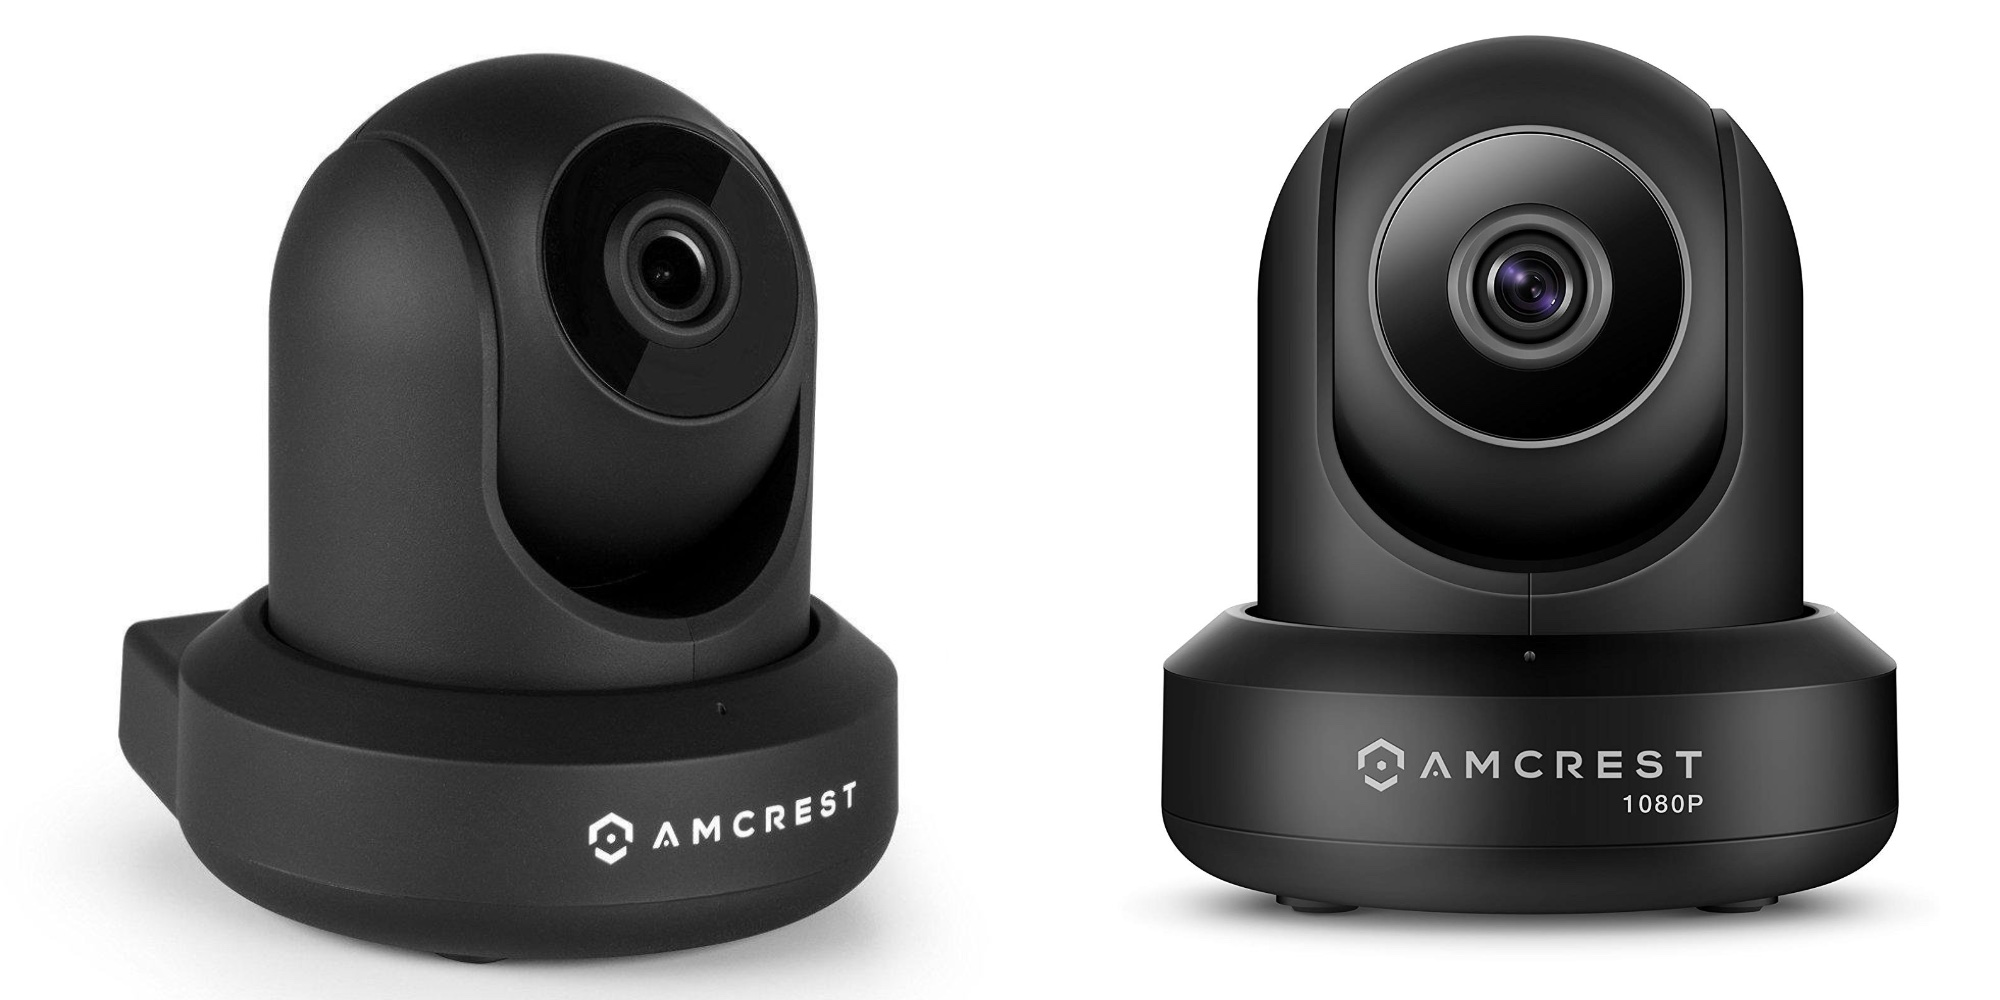 Amcrest's 1080p Pan/Tilt Wi-Fi Security Camera falls to $58 shipped (Amazon low, 22% off)